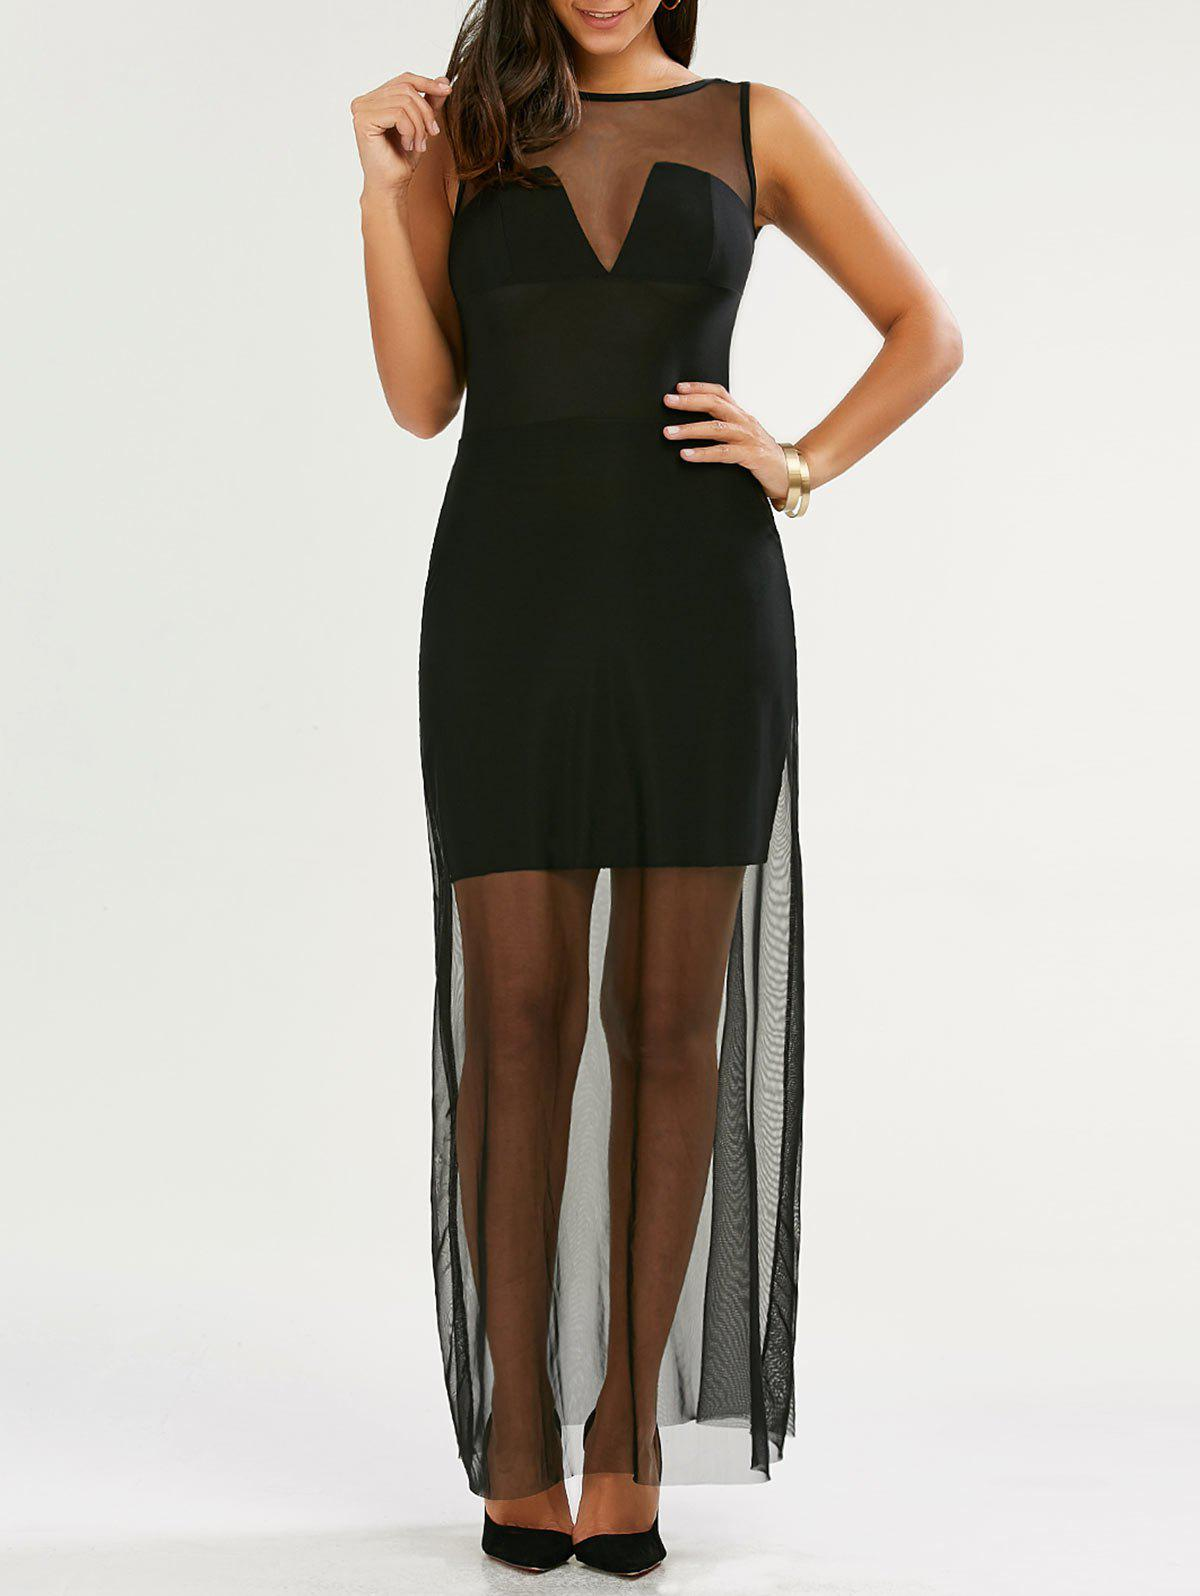 See Through Sleeveless Floor Length Dress - BLACK XL